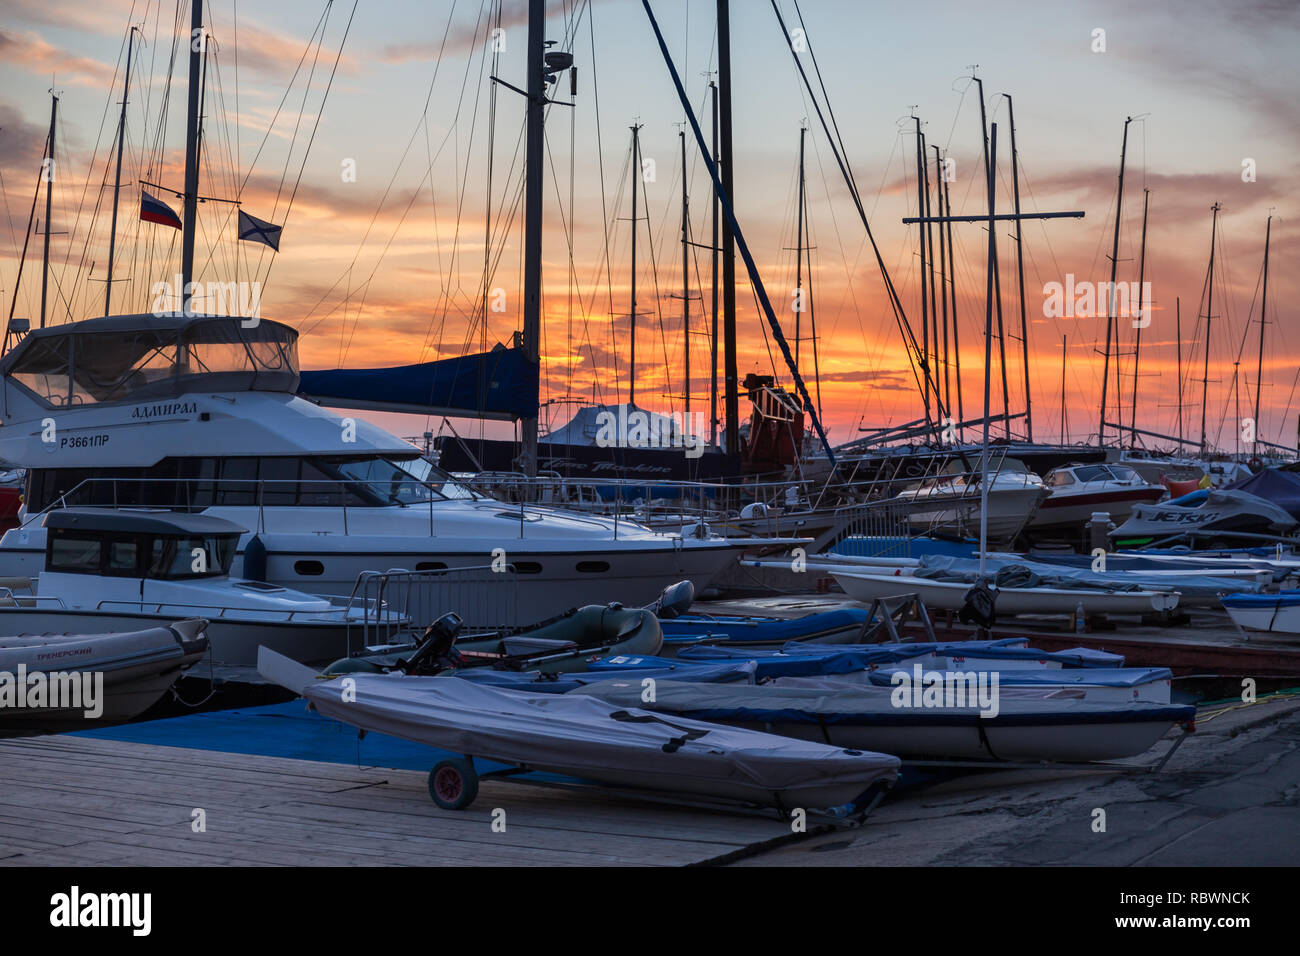 VLADIVOSTOK, RUSSIA - AUGUST, 2018: Sunset view of the yachts standing in harbour - Stock Image